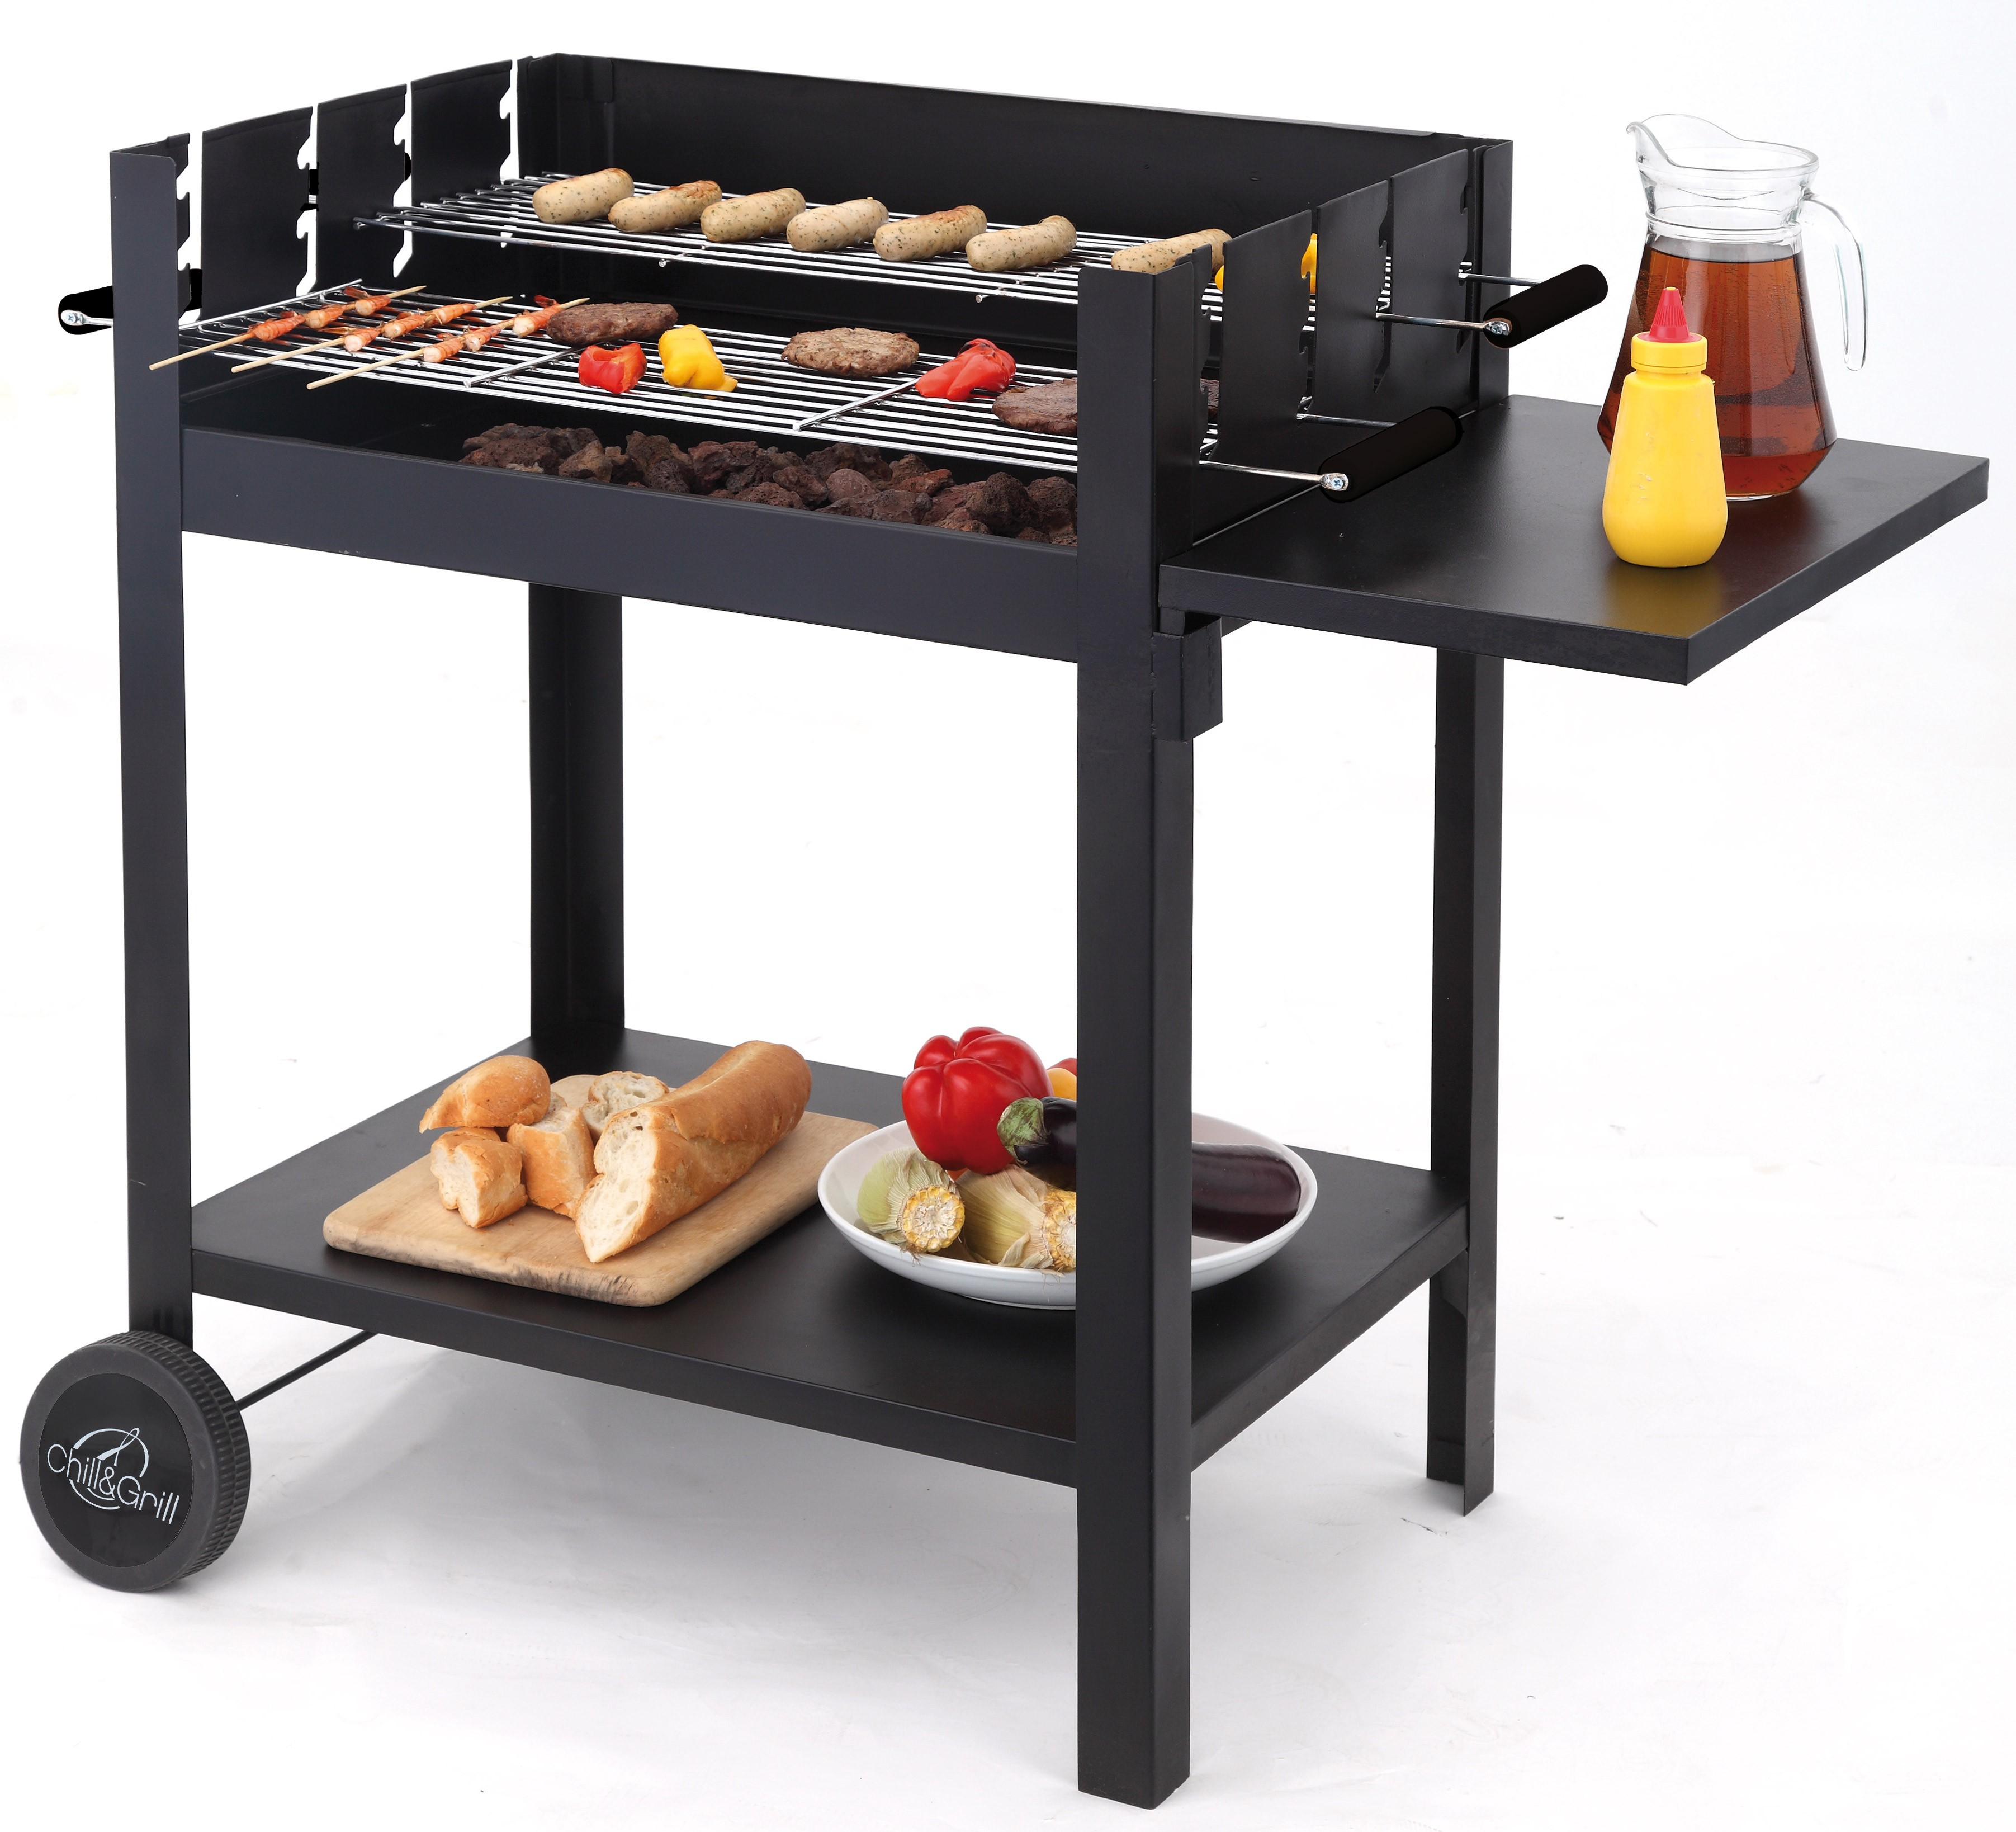 tepro holzkohlegrill chill grill lambada grillwagen bei. Black Bedroom Furniture Sets. Home Design Ideas